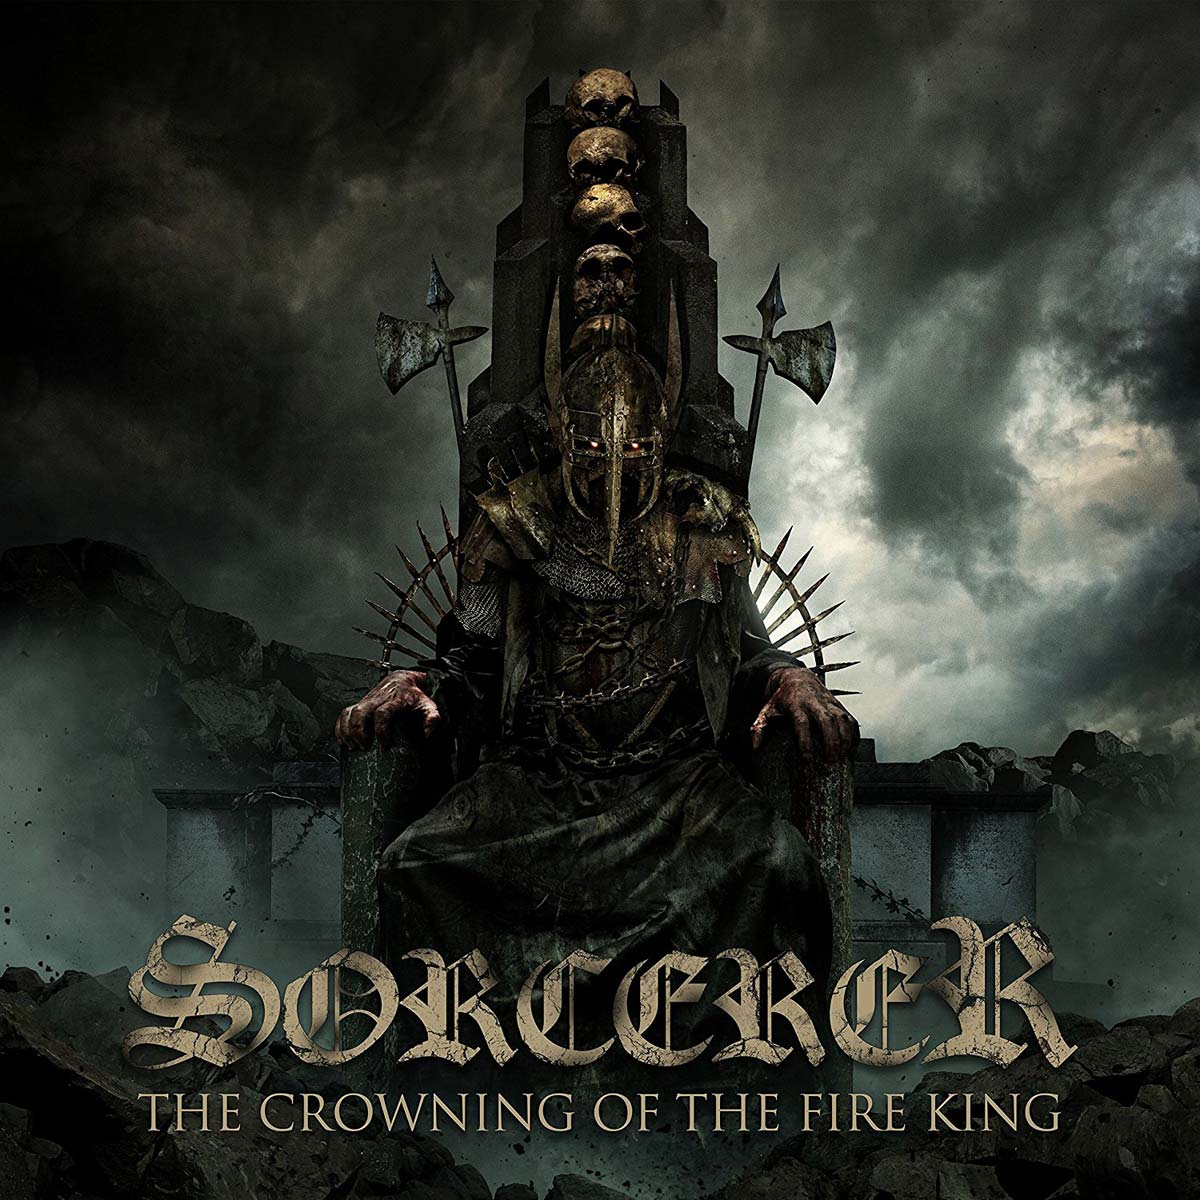 Sorcerer: The Crowning Of The Fire King (2017) Book Cover